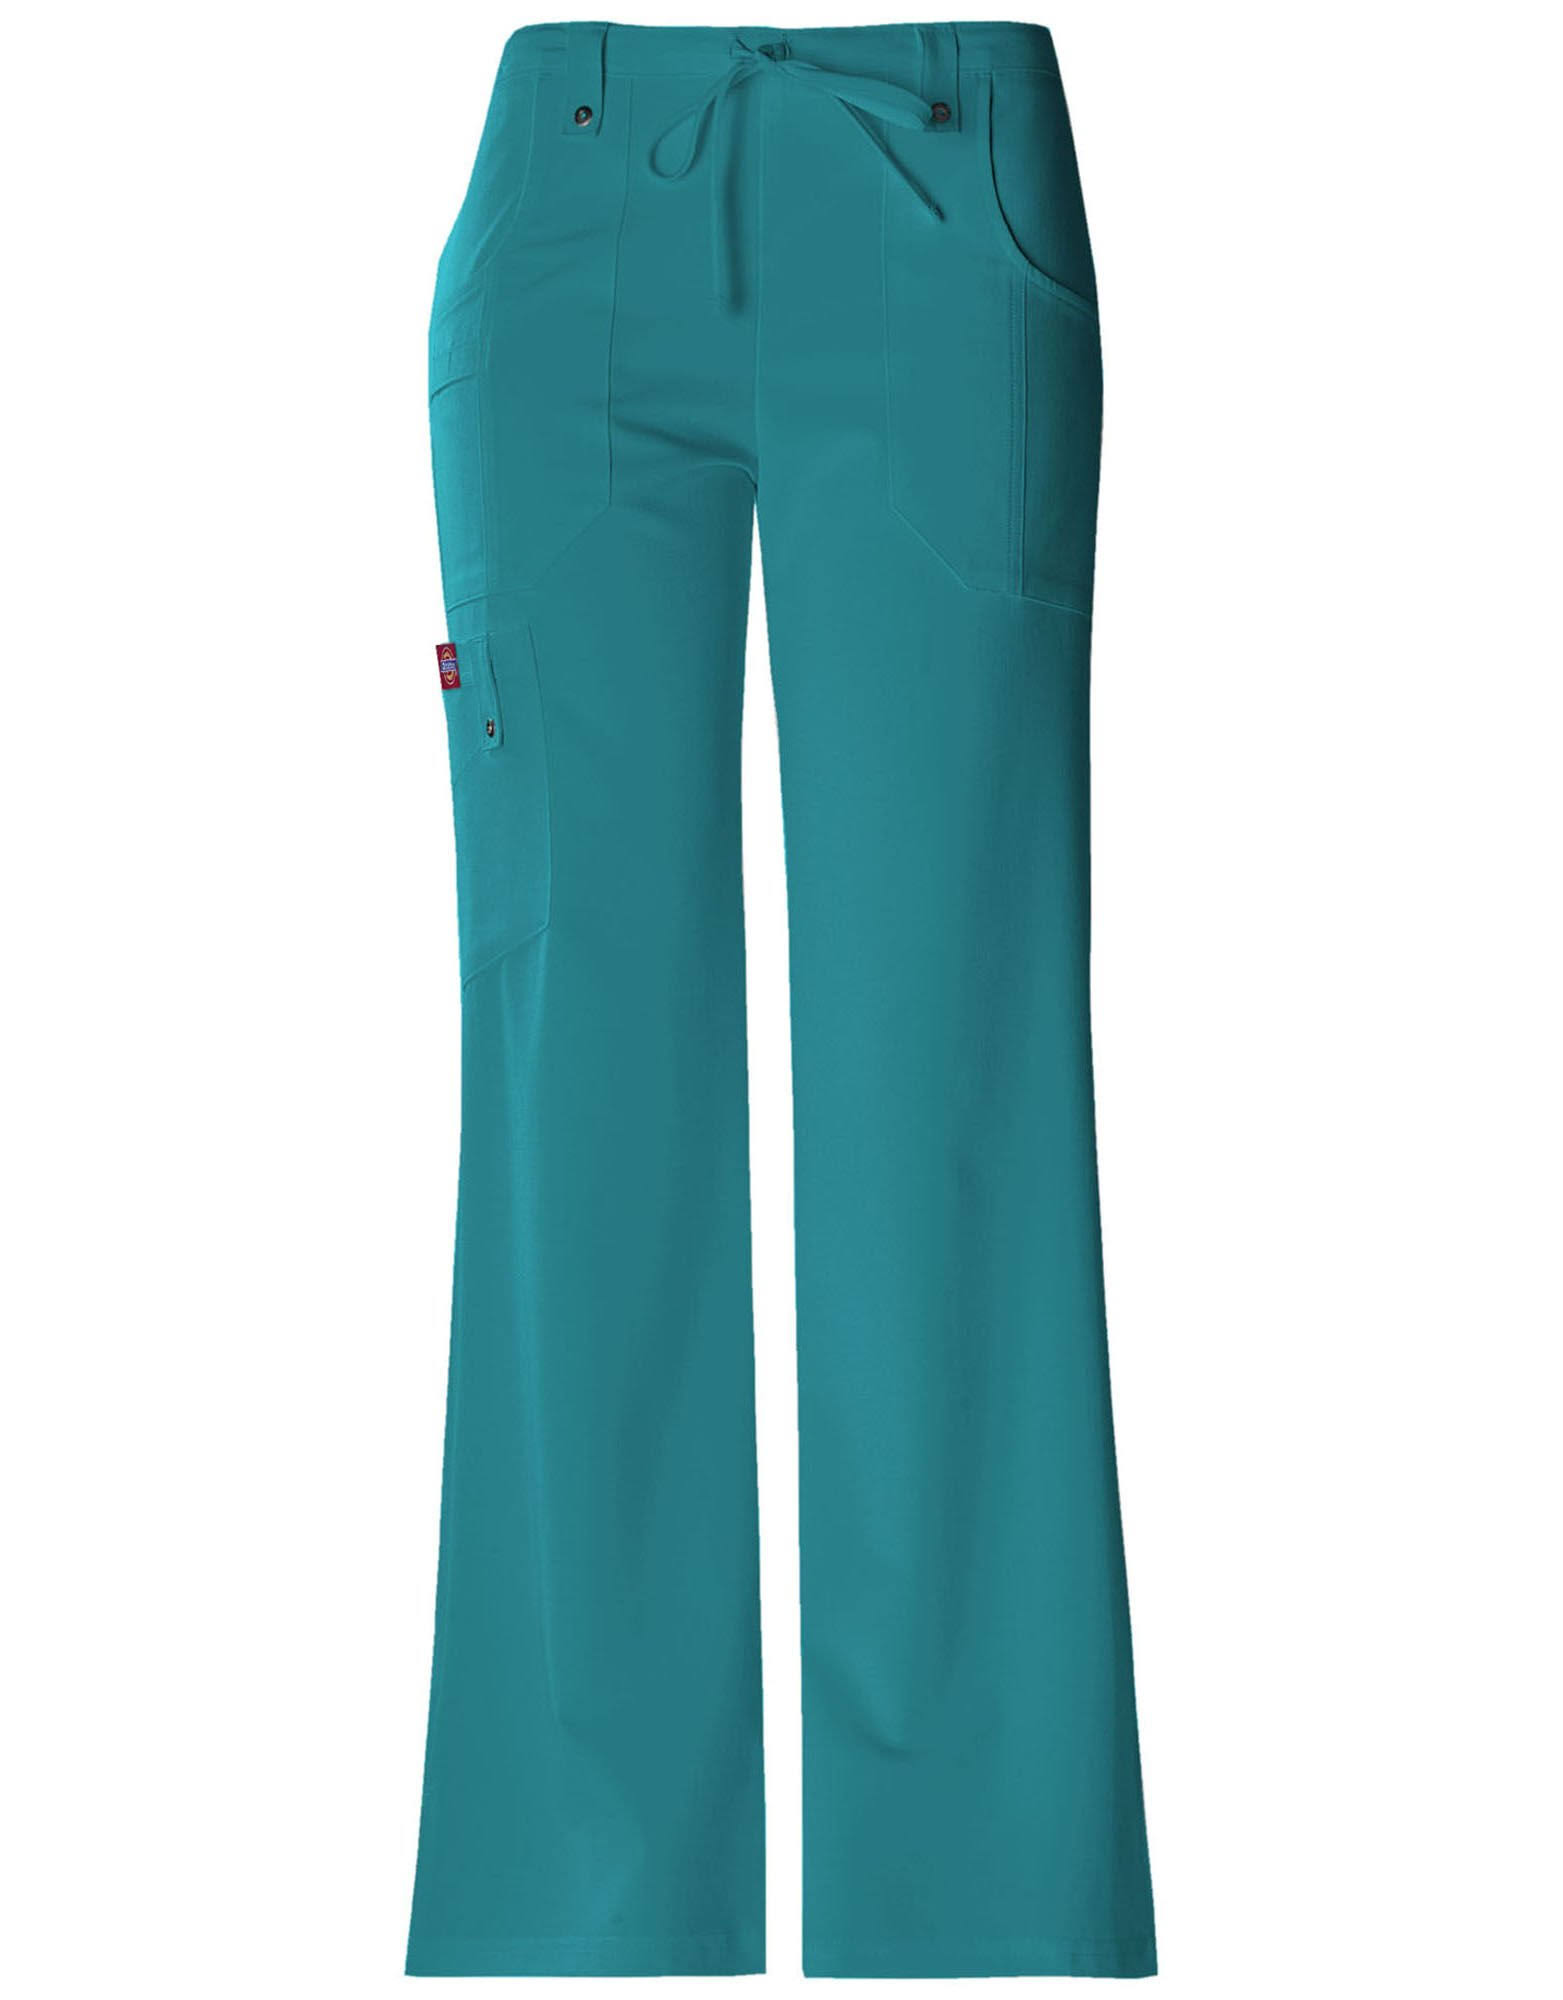 Dickies 82011 Xtreme Stretch Drawstring Flare Pants - Teal, Medium